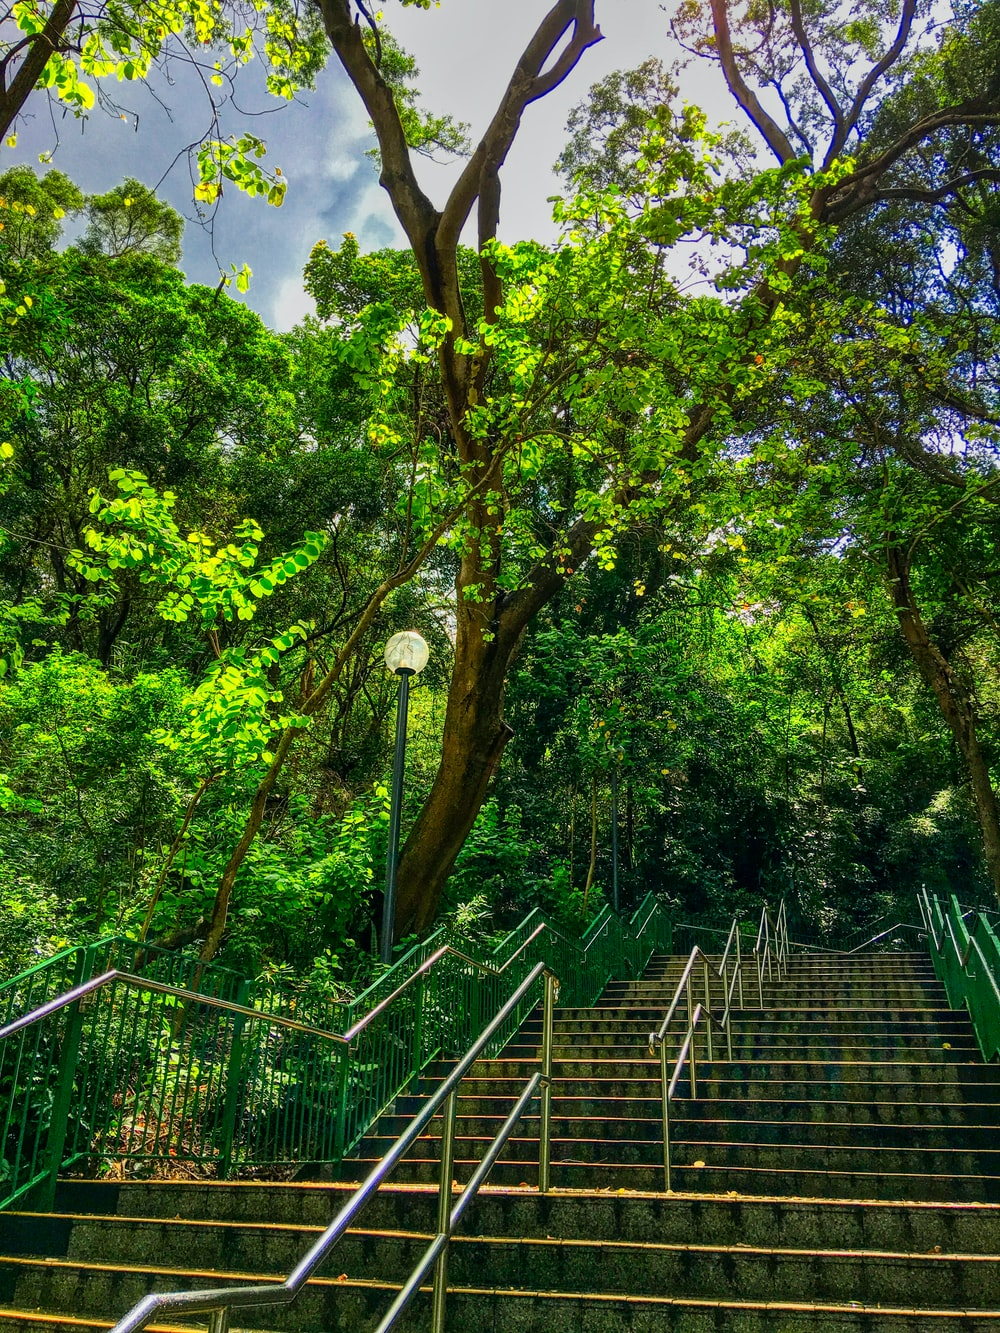 stairs with rails surrounded with trees